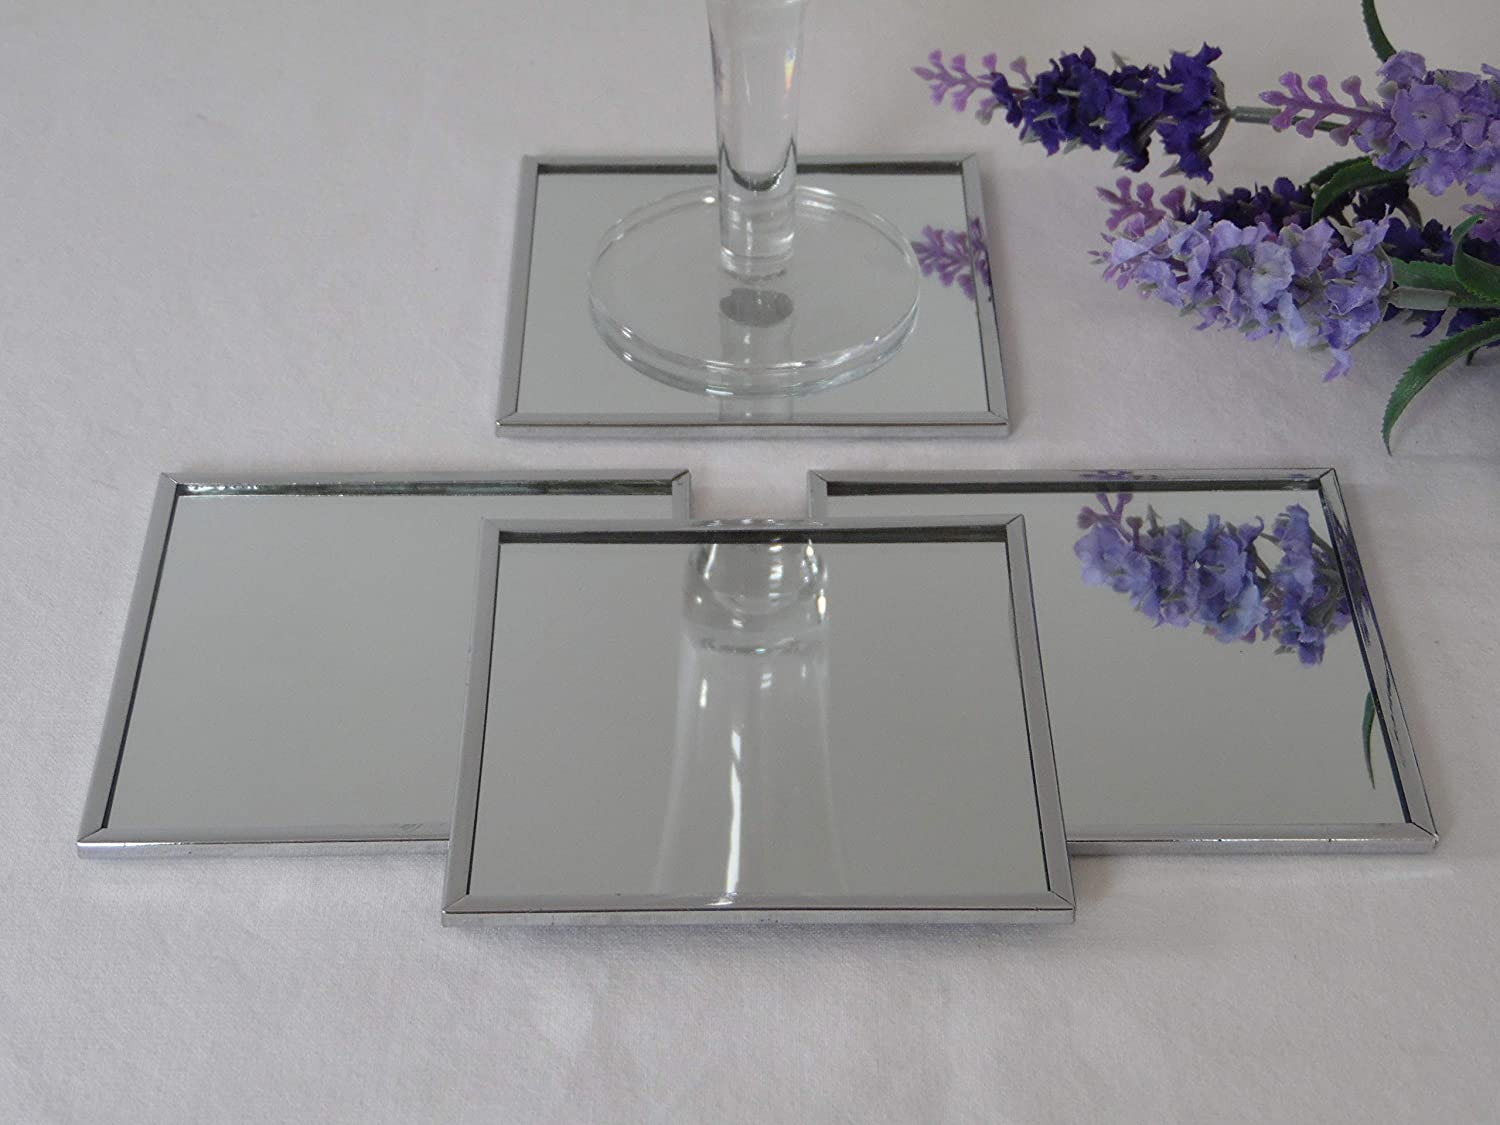 Set Of 4 Silver Square Mirrored Glass Coaster With Metal Edges Amazon Co Uk Kitchen Home